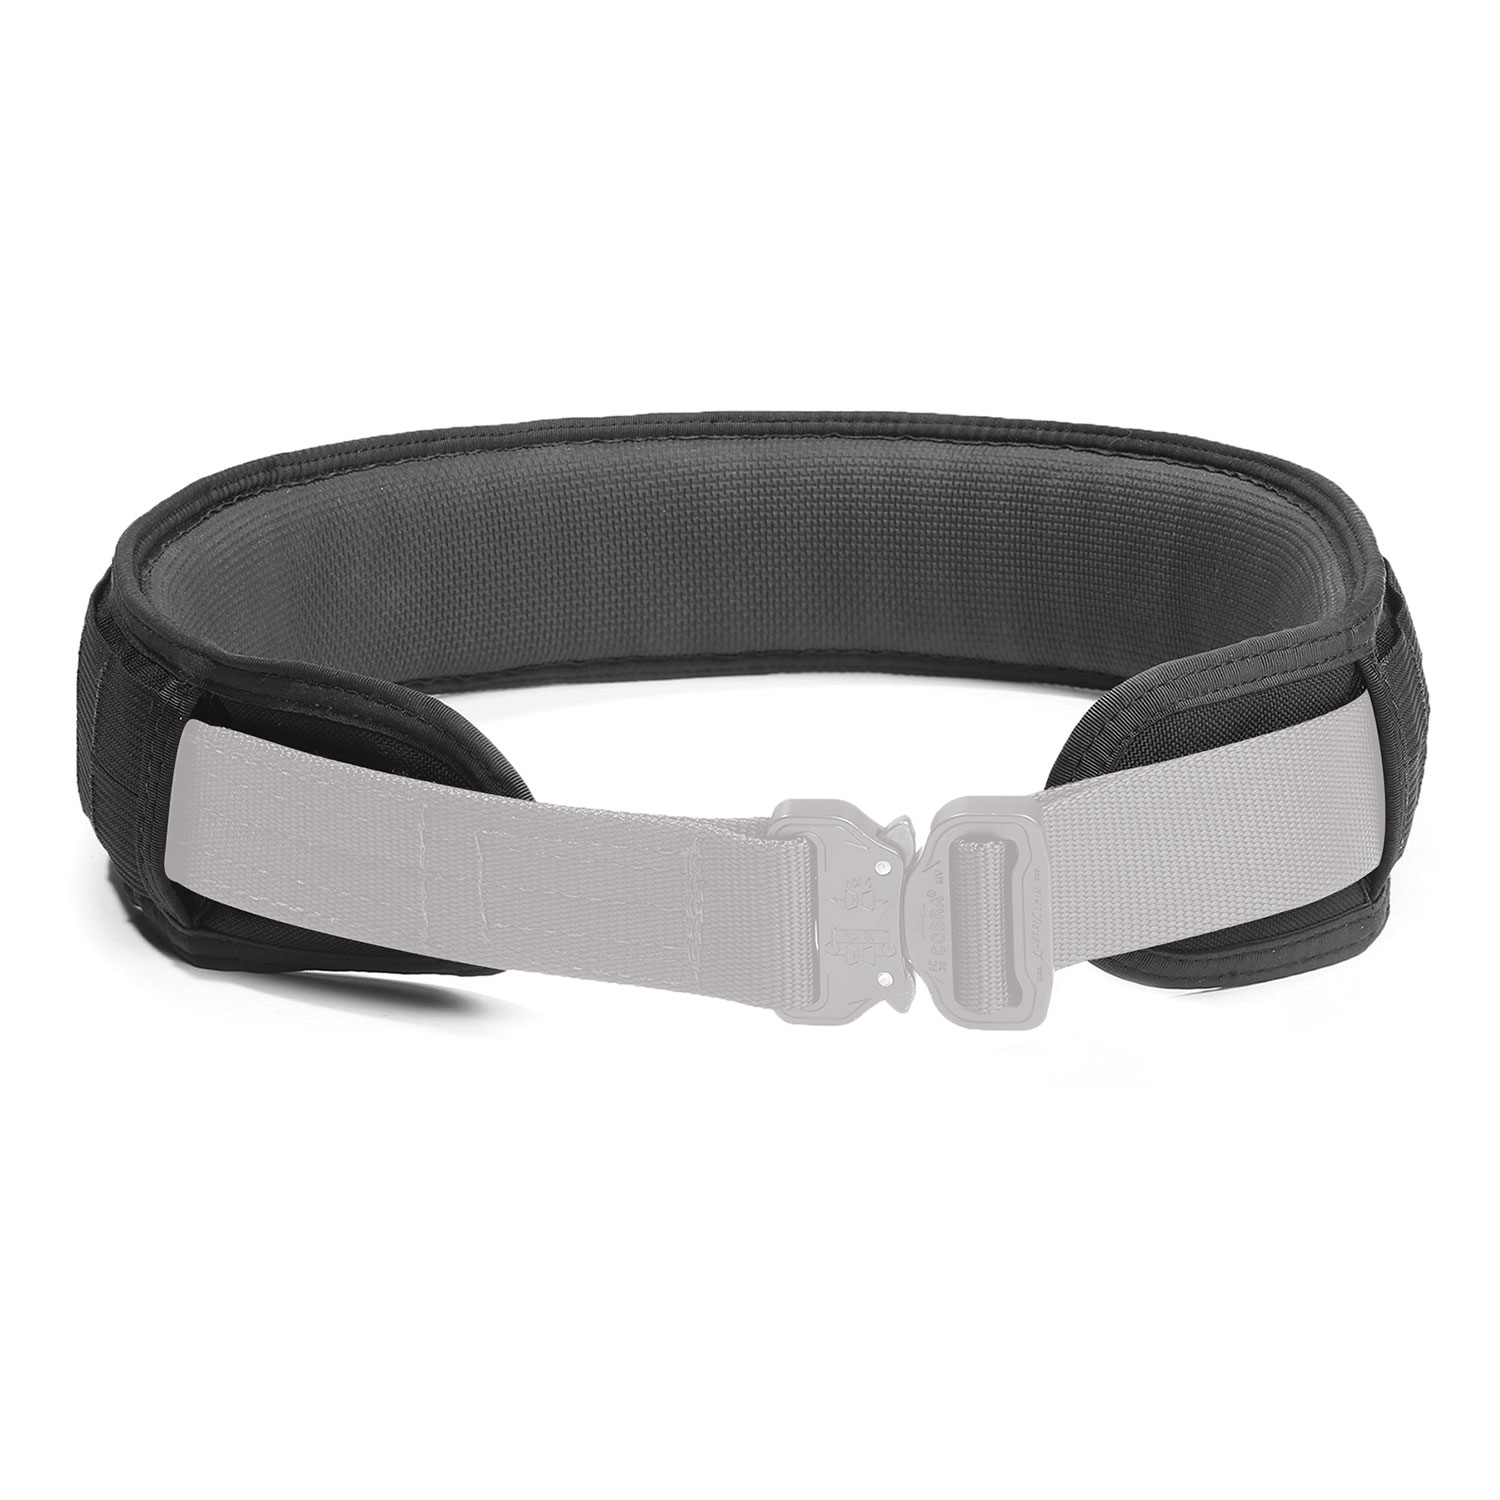 High Speed Gear Slim Sure Grip Padded Belt